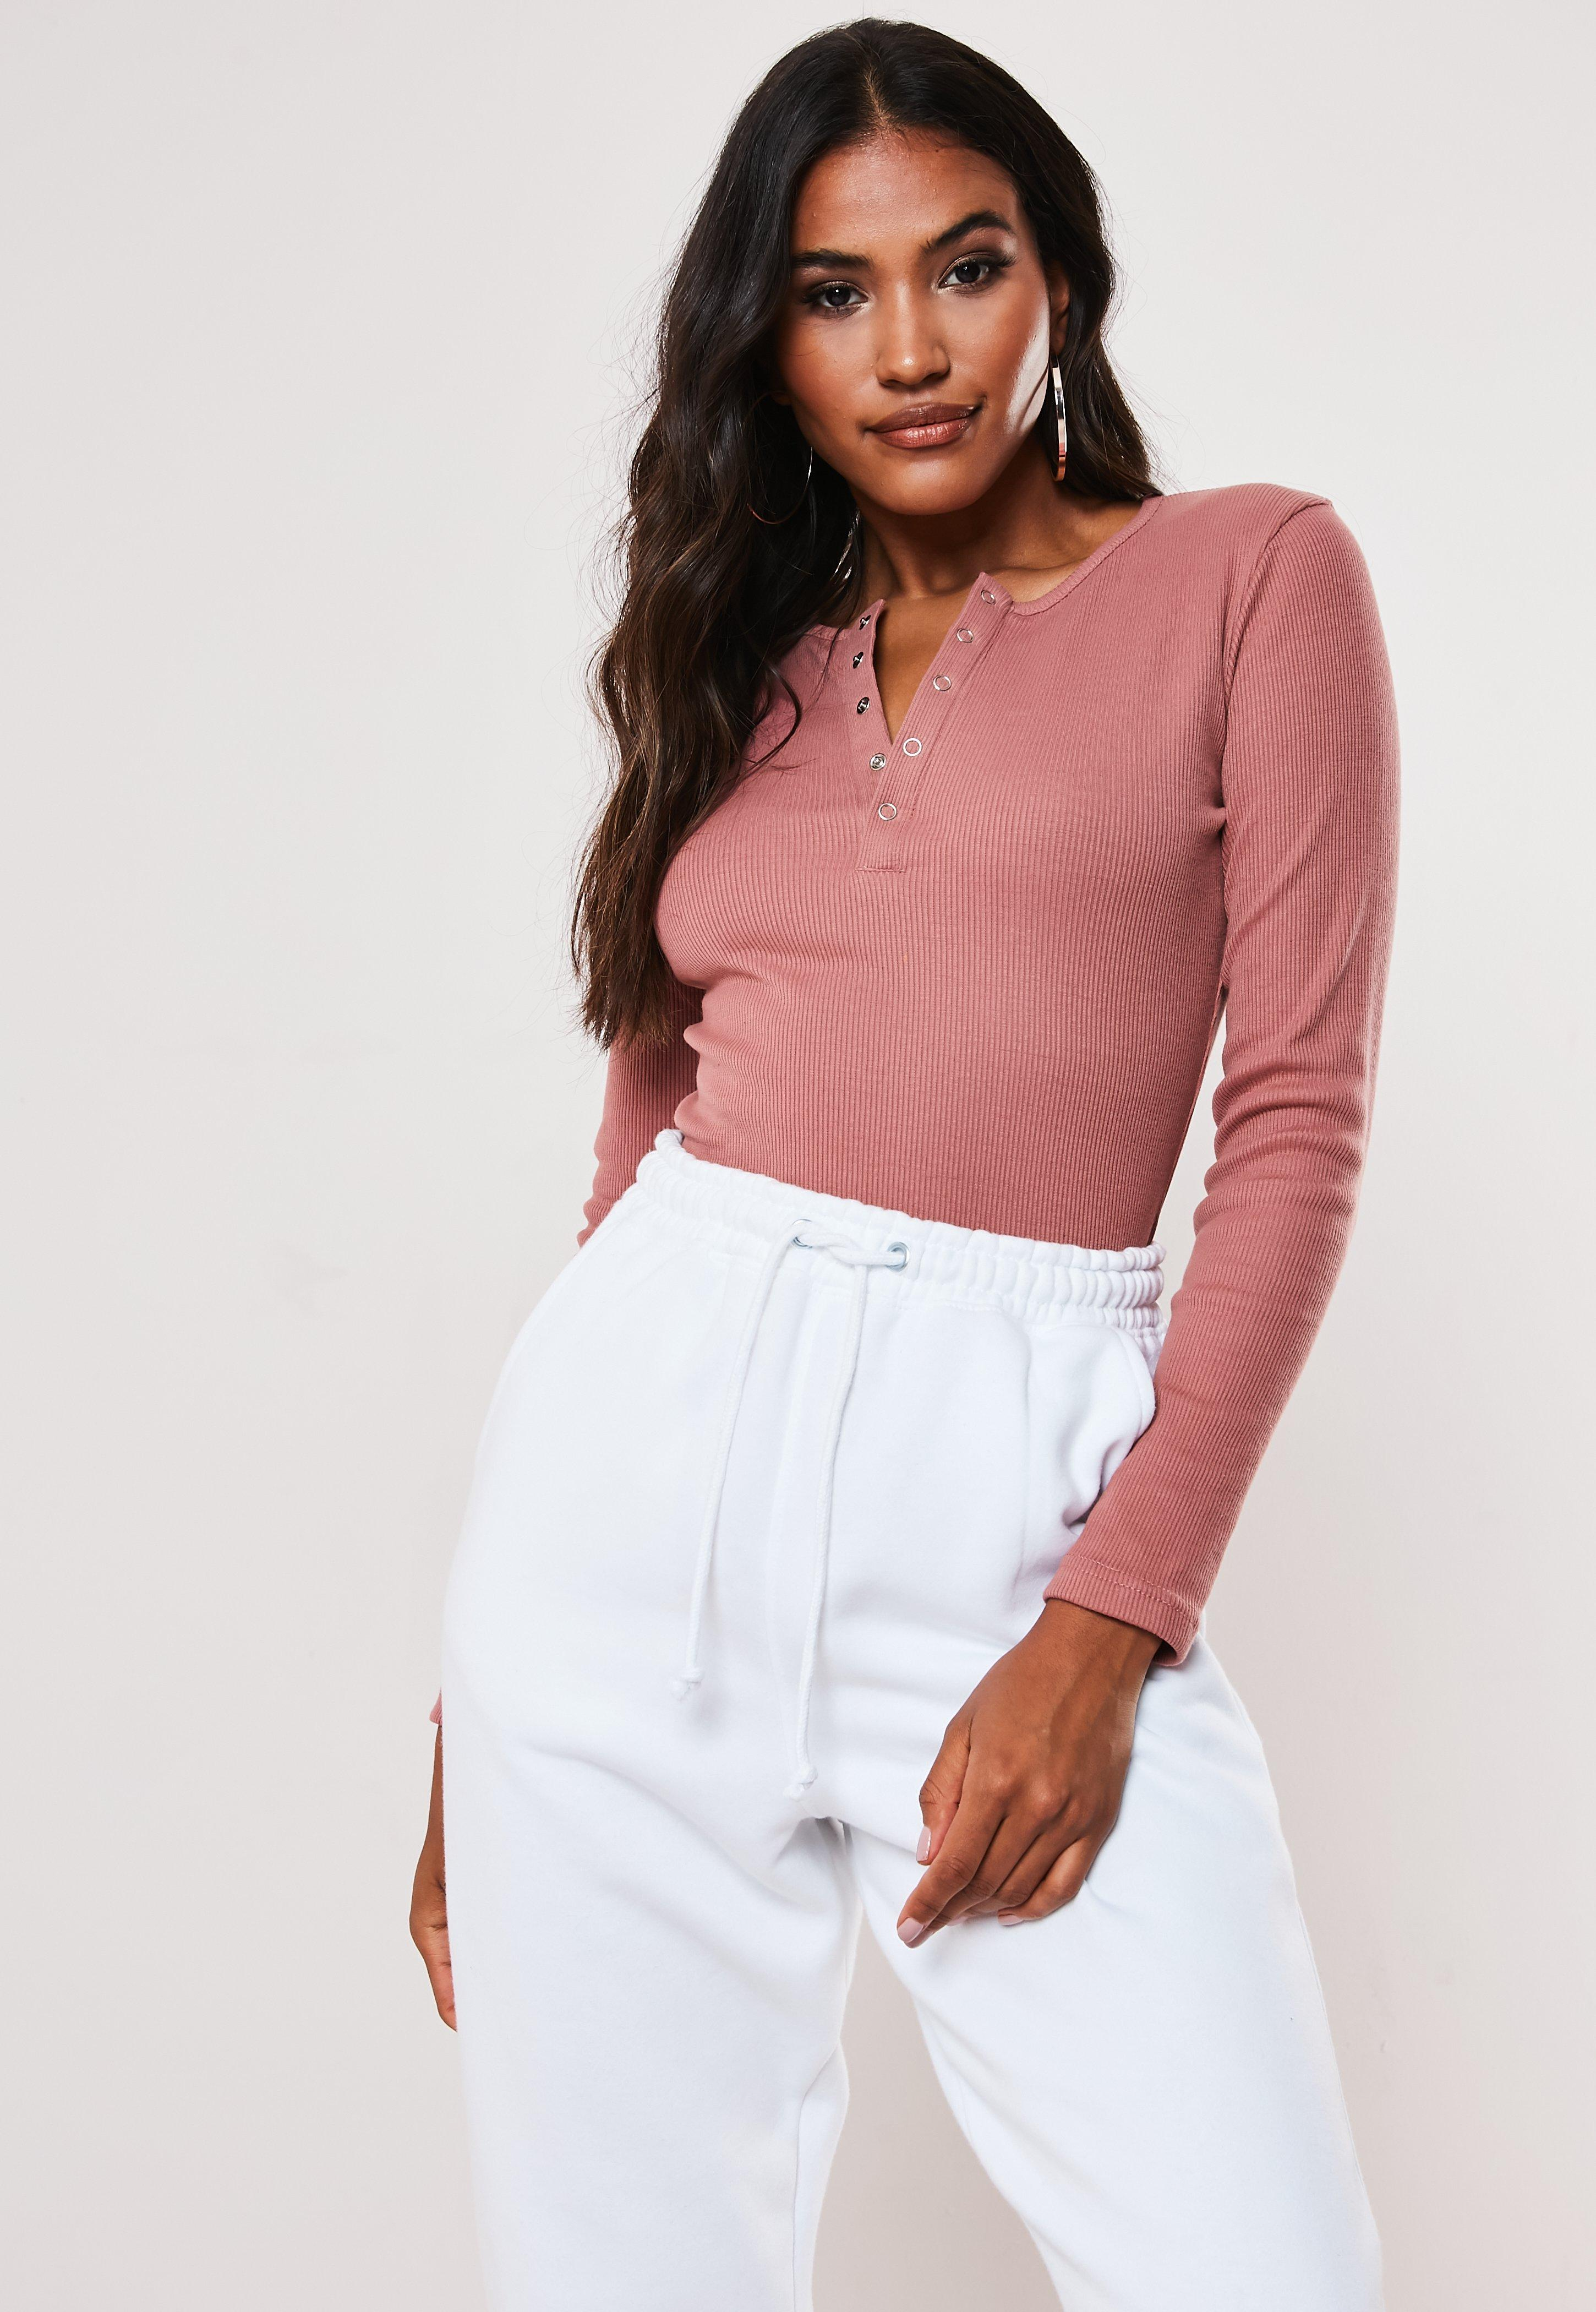 a6c94ee931f5 T-Shirts & Women's Tees - Missguided